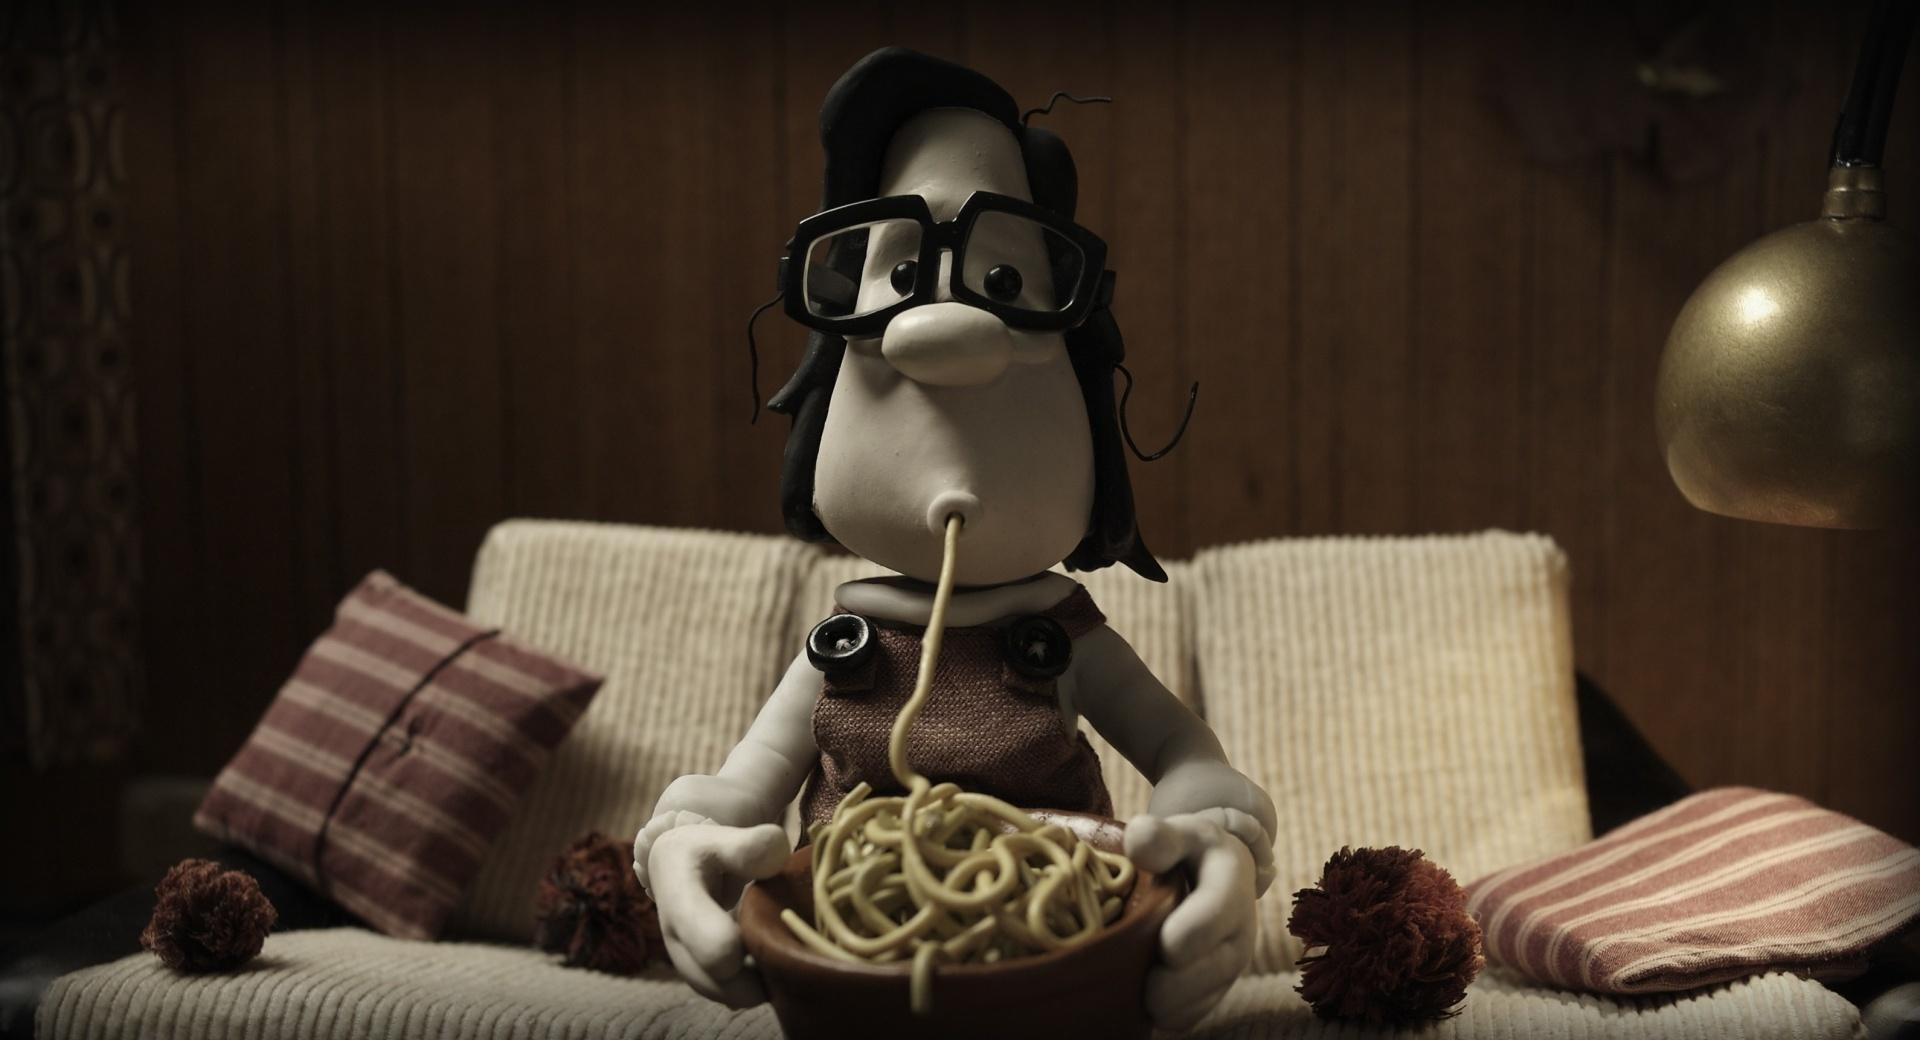 Mary And Max Spaghetti wallpapers HD quality